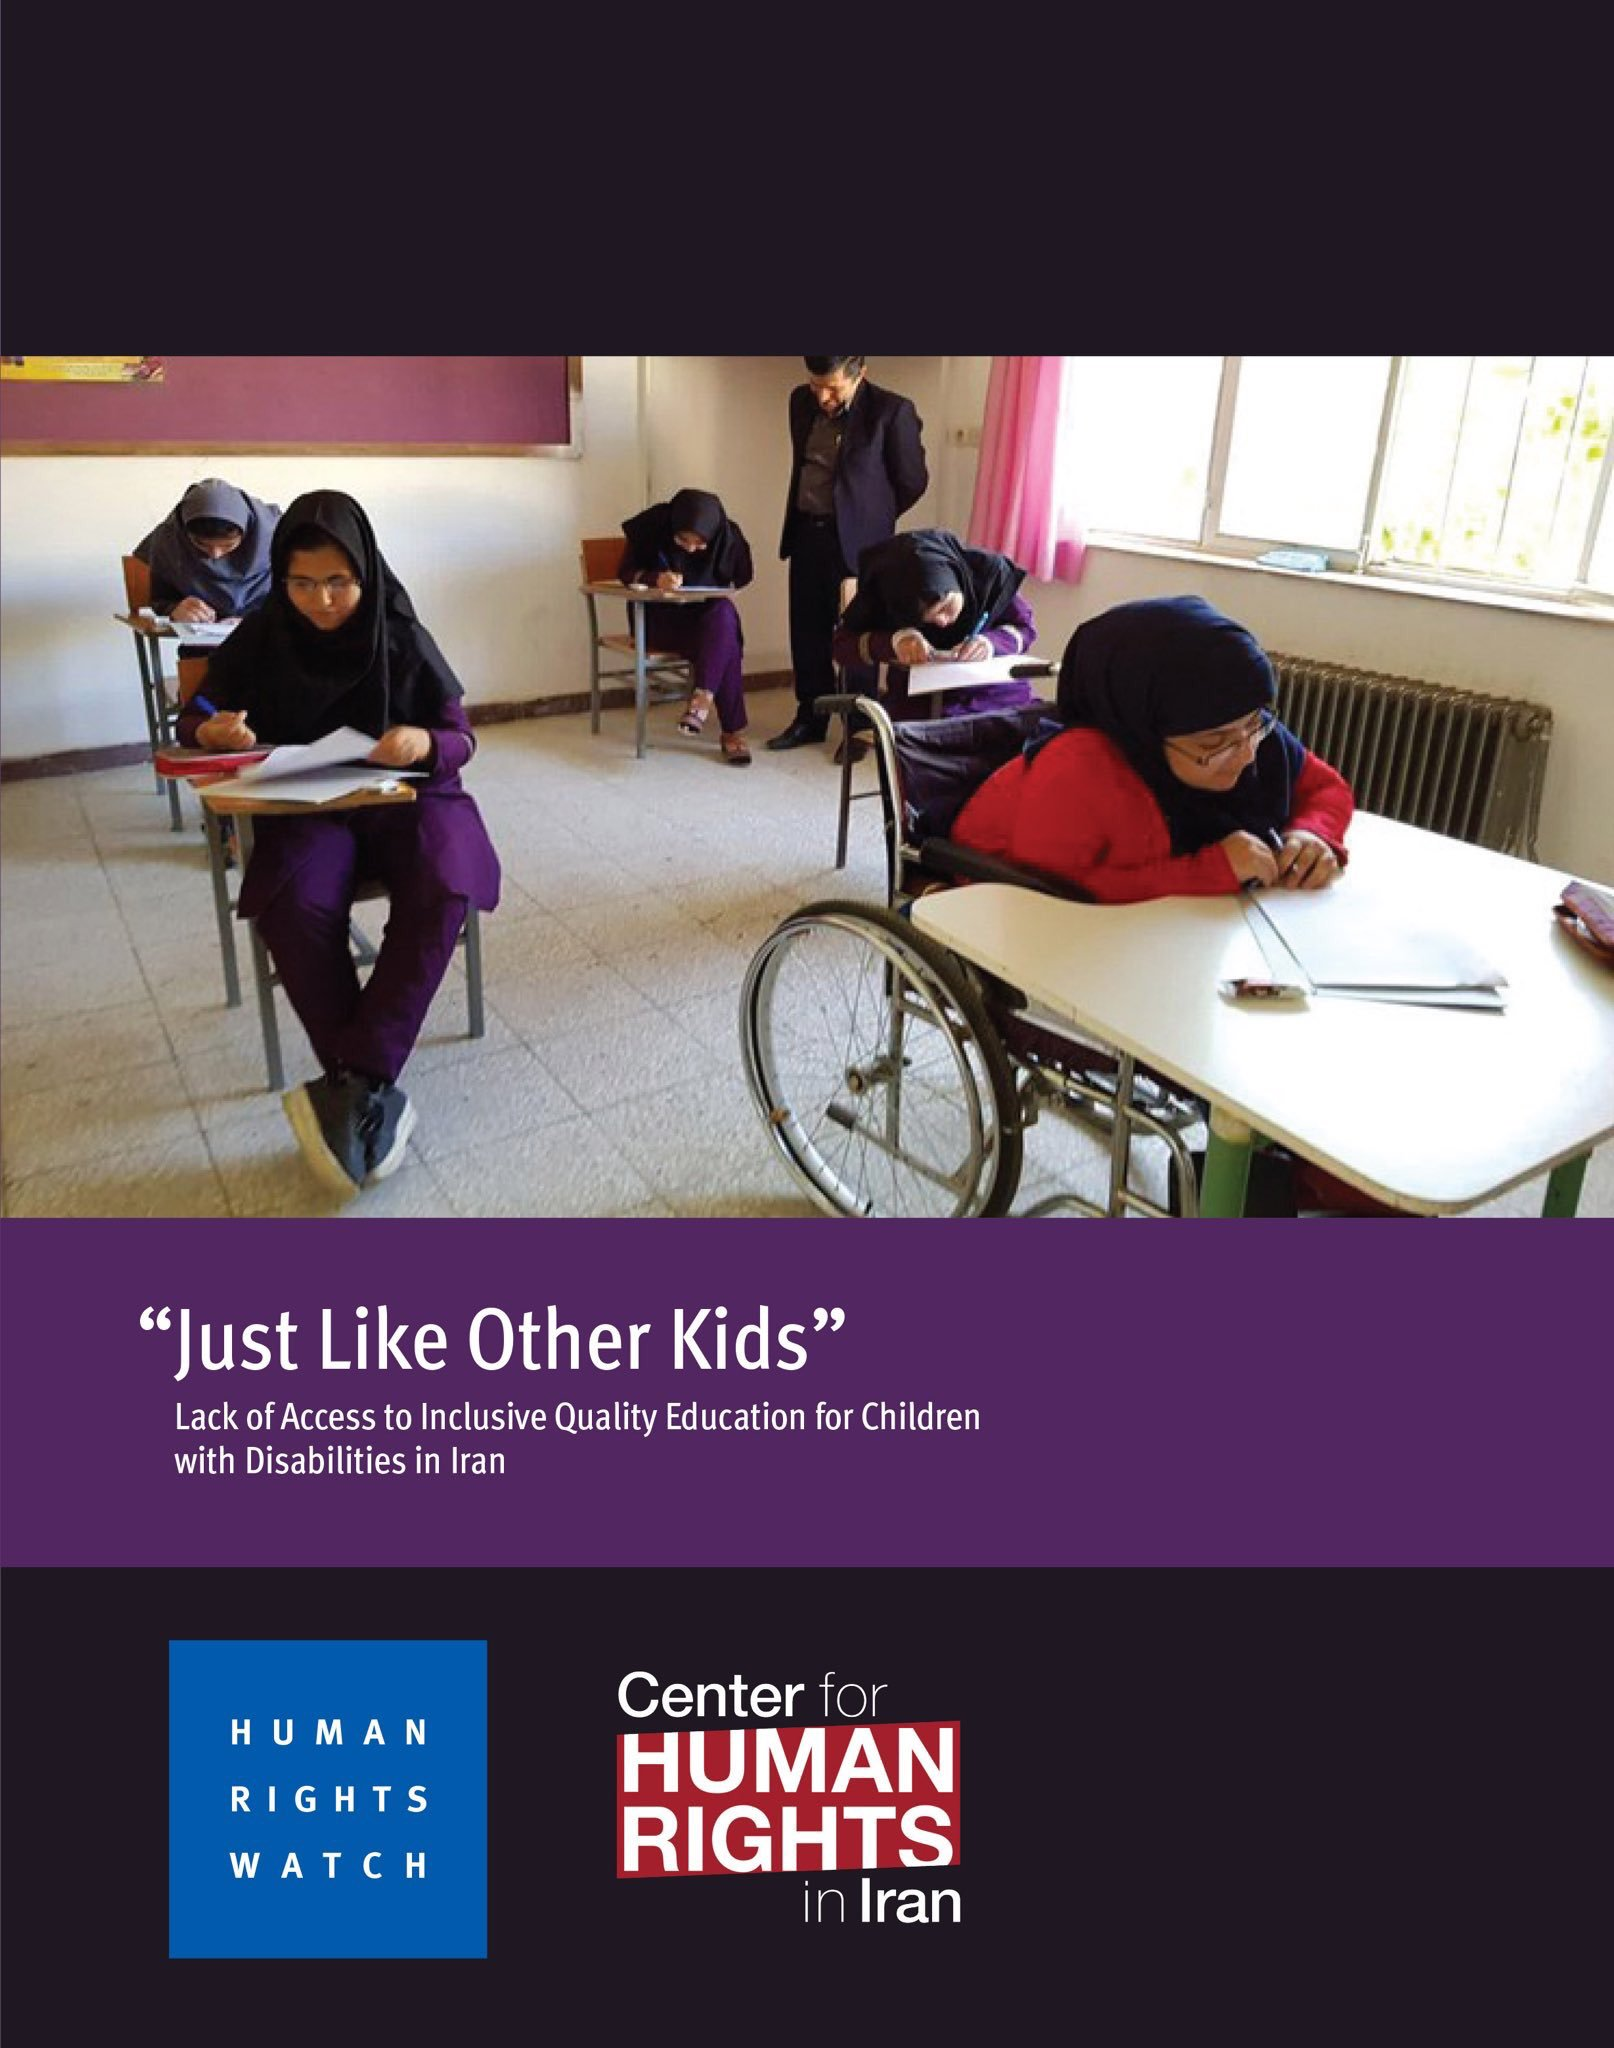 'Just Like Other Kids': Lack of Access to Inclusive Quality Education for Children with Disabilities in Iran